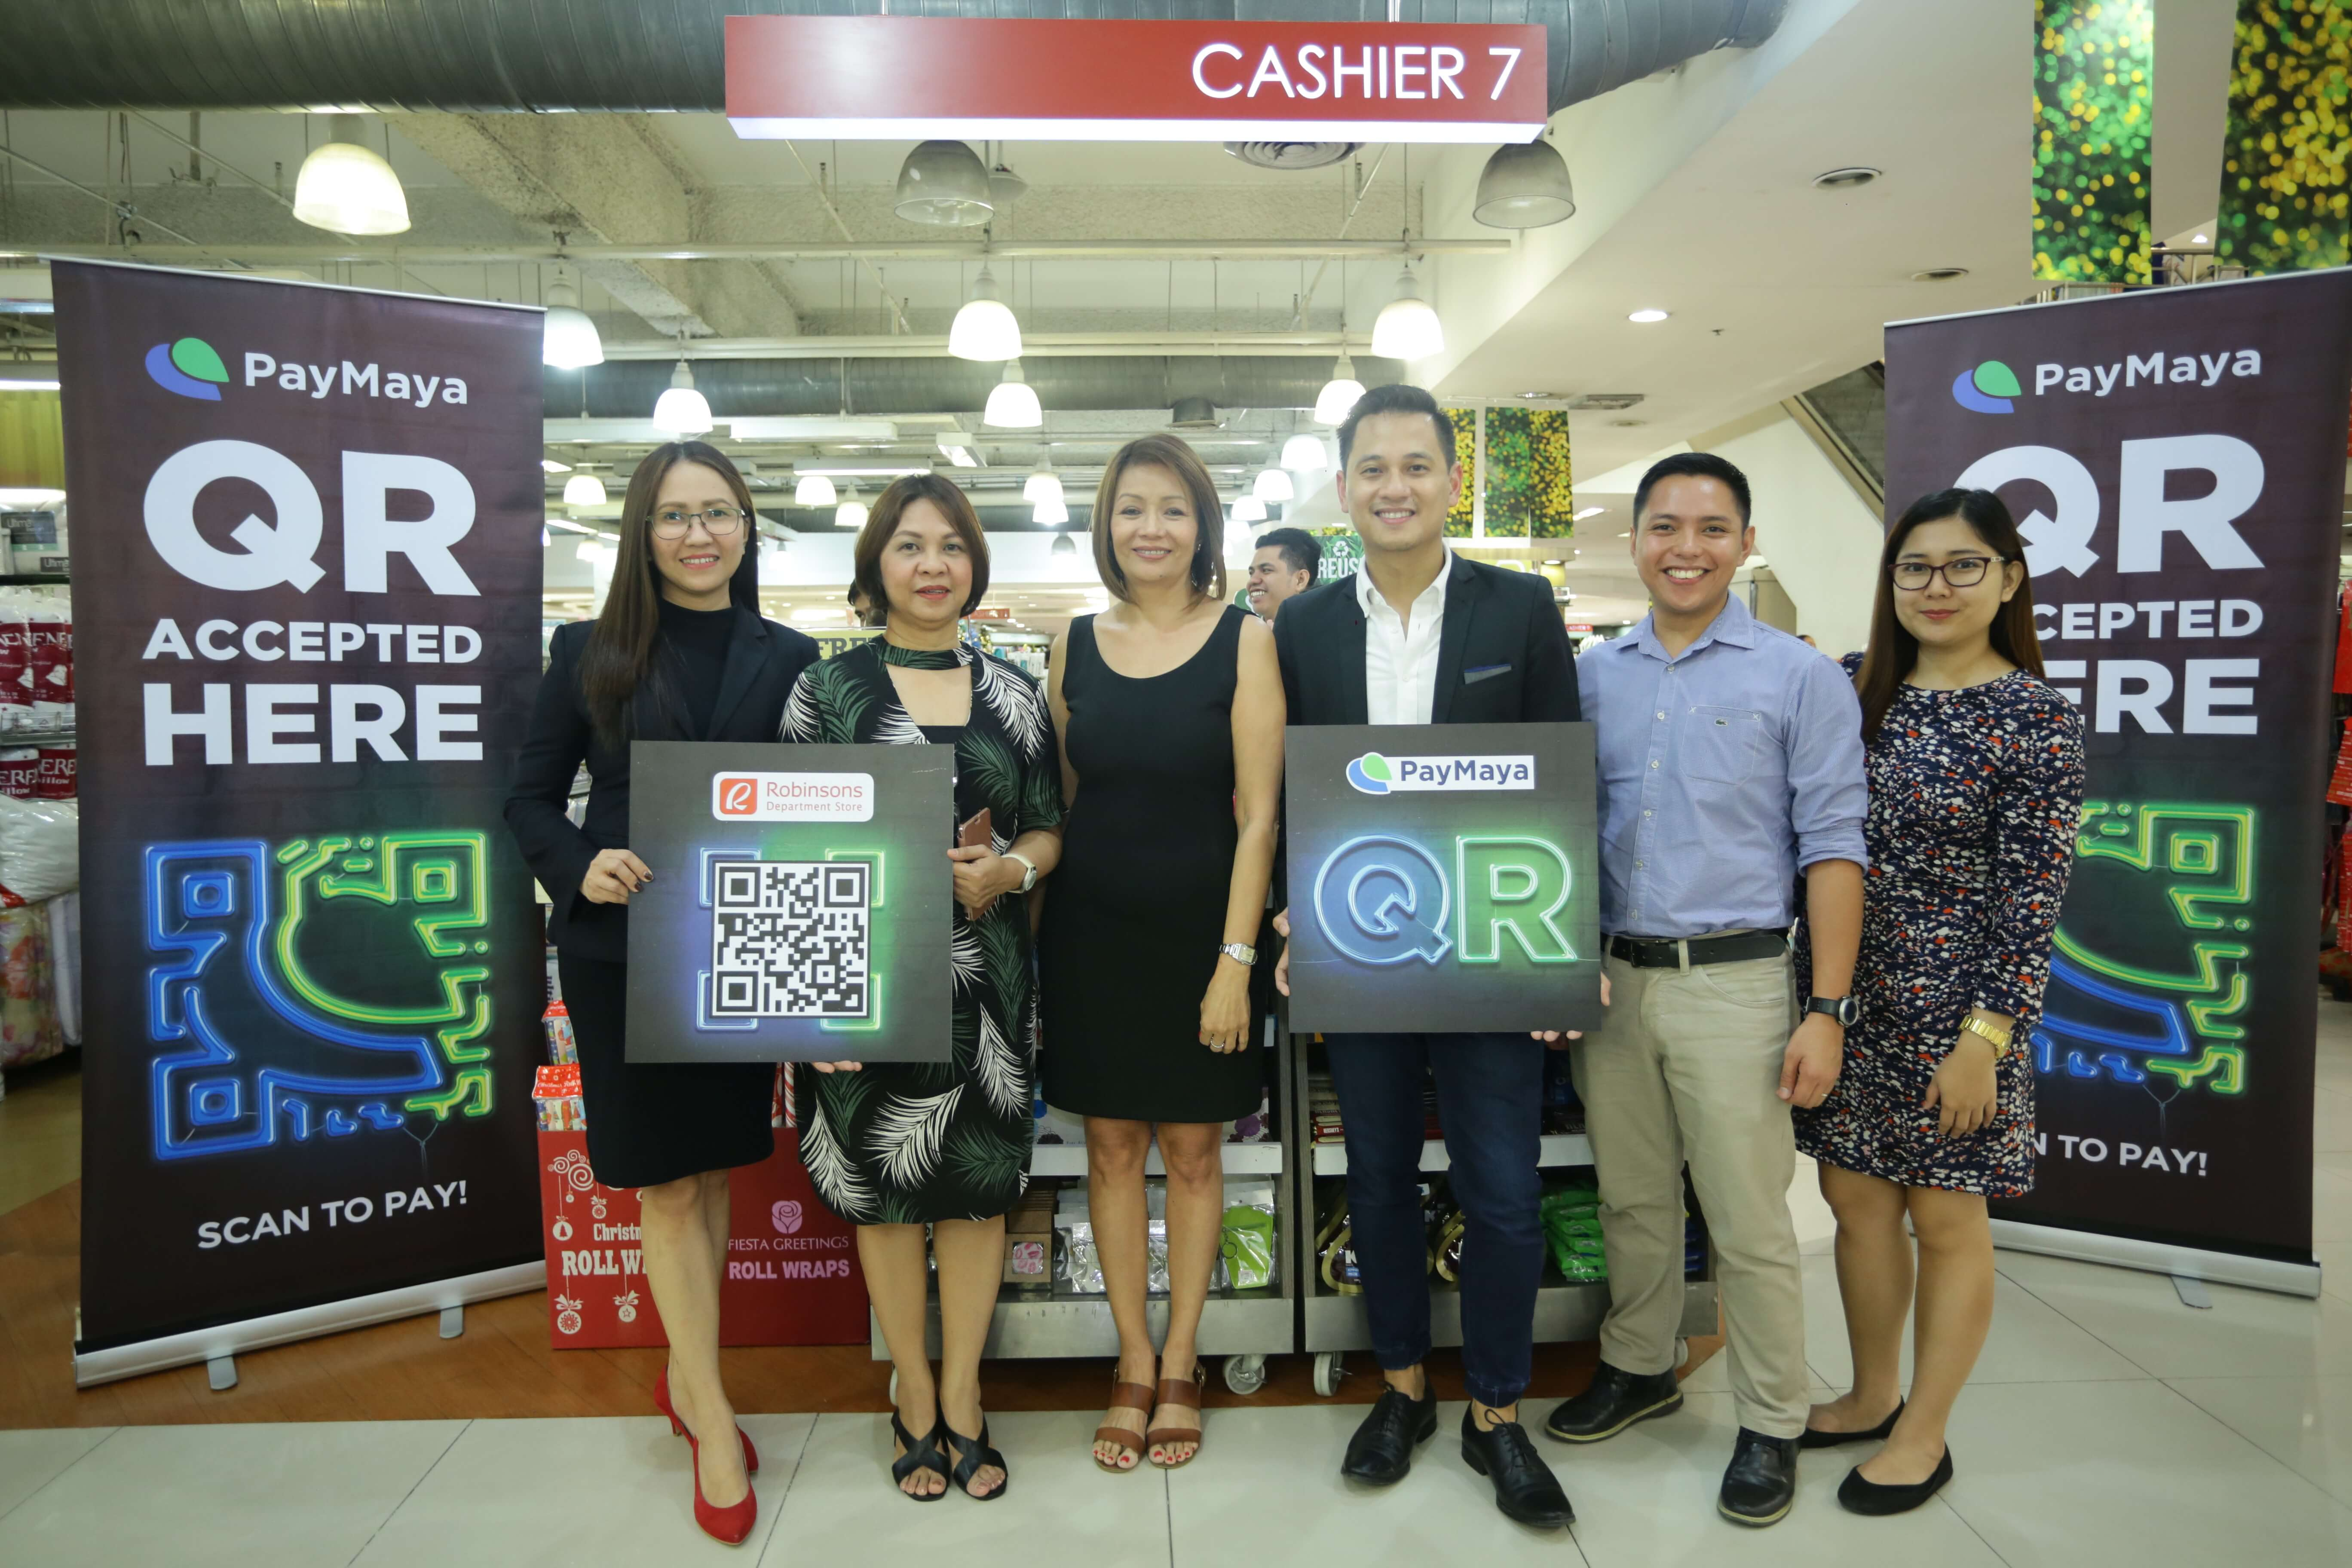 PayMaya x RDS 1 - Shop with PayMaya at Robinson's Department Store in Galleria!